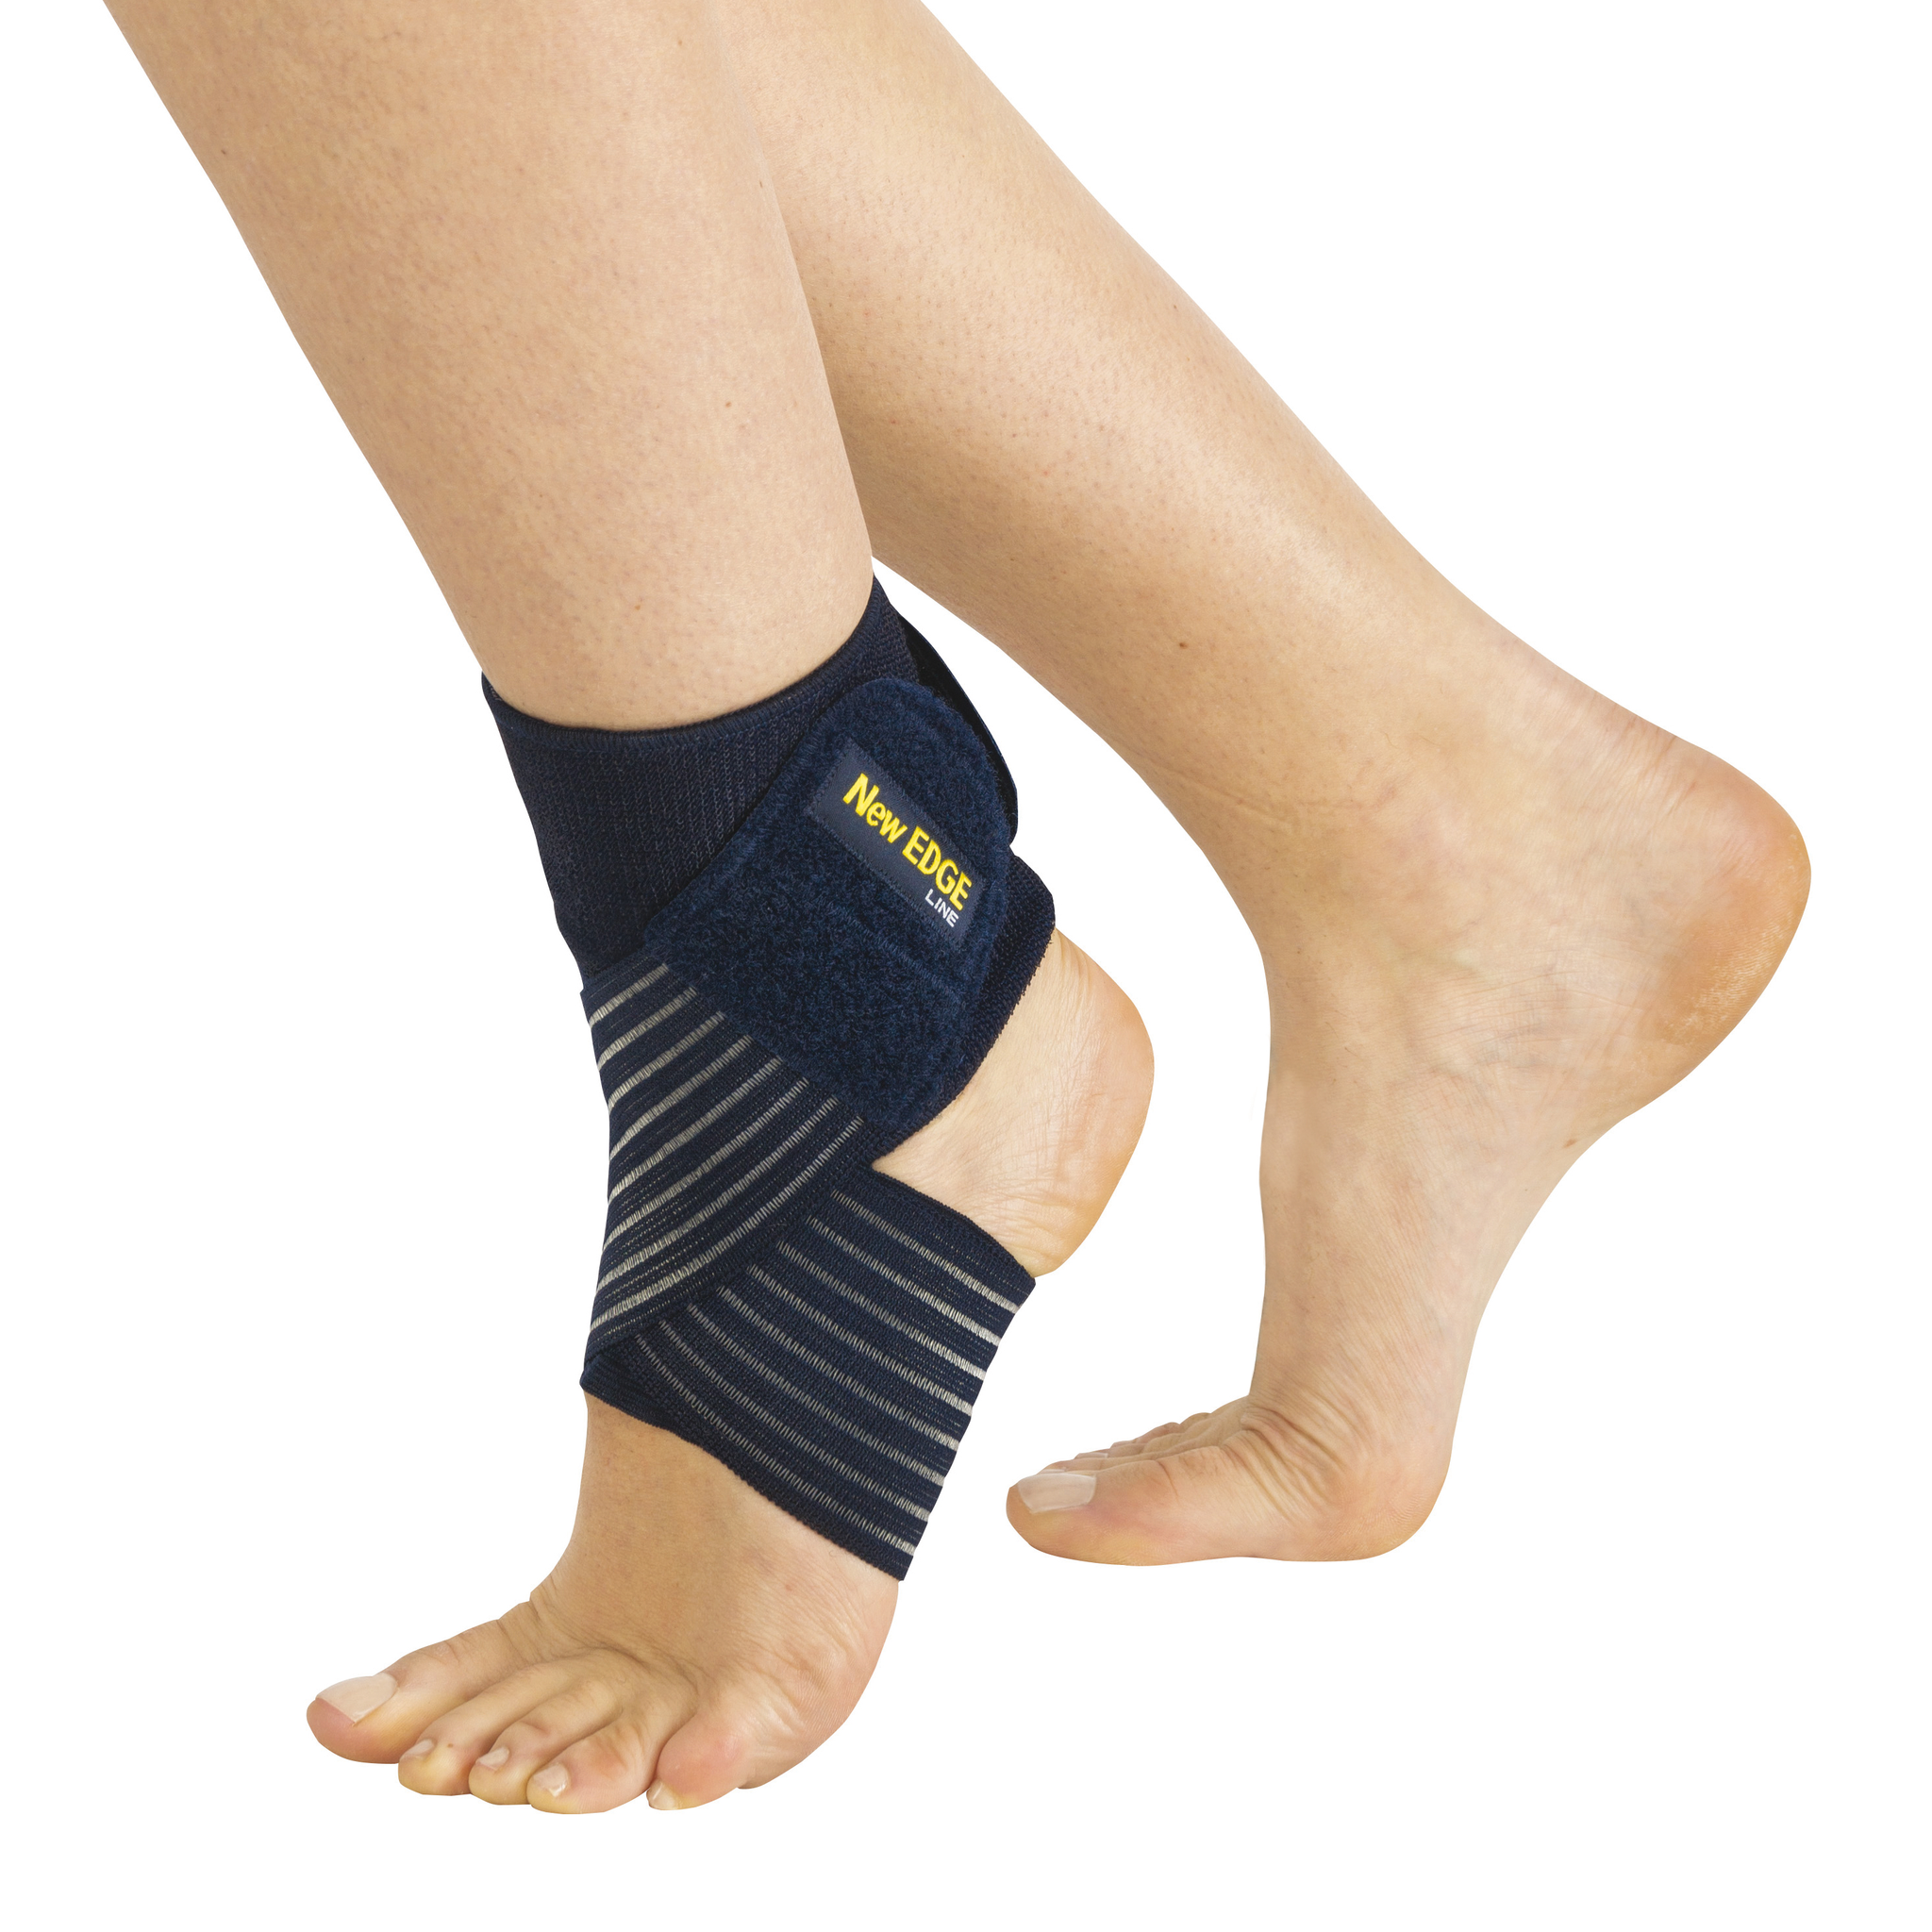 Mercurio™ Ankle Support